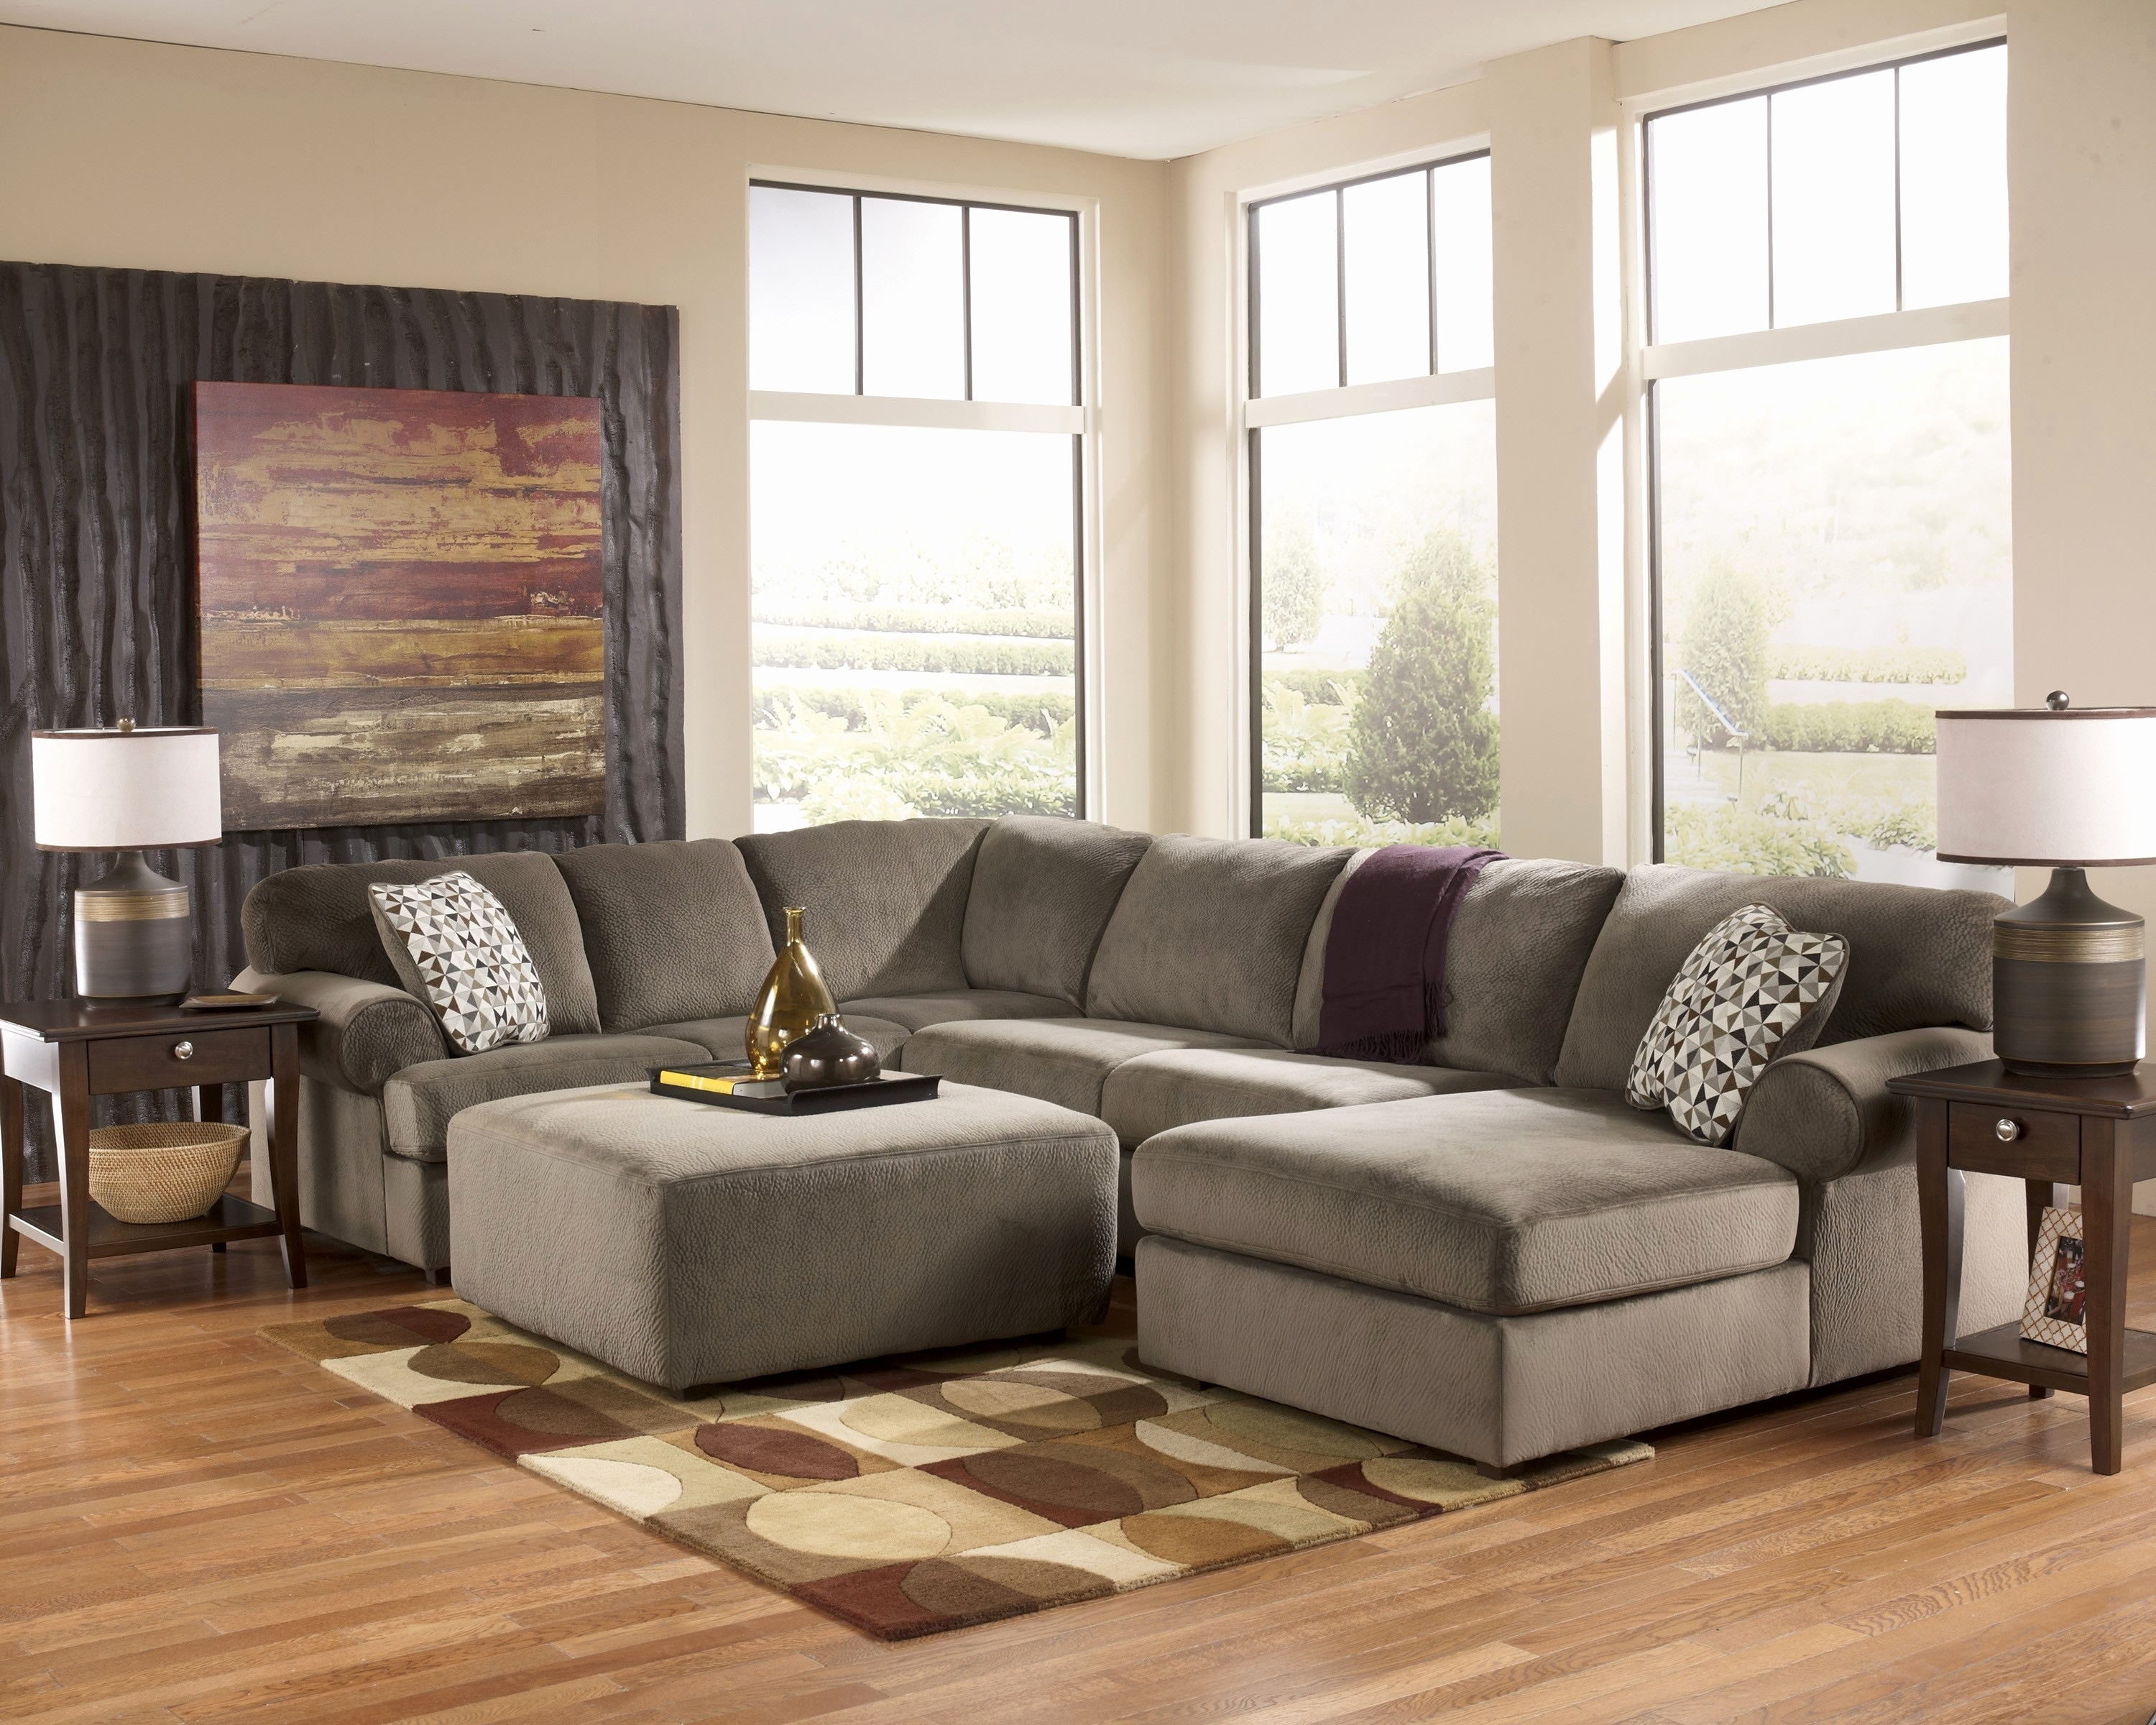 Sectional Sofa : Footre~1 Sectional With Oversized Ottoman in Sectional Sofas With Oversized Ottoman (Image 11 of 15)